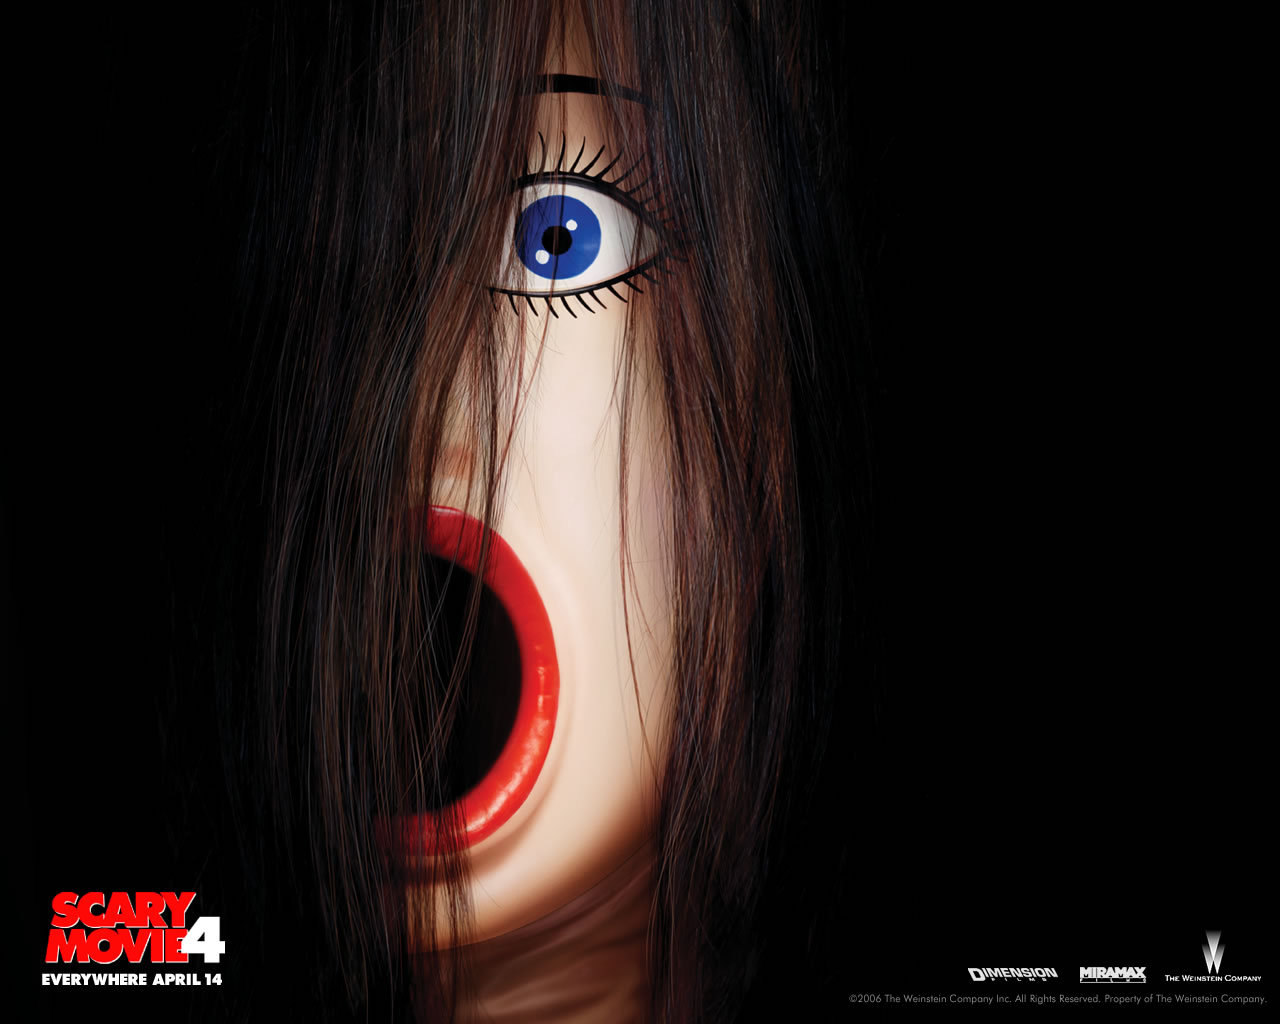 http://1.bp.blogspot.com/_IwRqx_H611g/TDsQh4lI4LI/AAAAAAAAACE/DYju9udOpzE/s1600/Scary_Movie_4_Wallpaper_4_1280.jpg